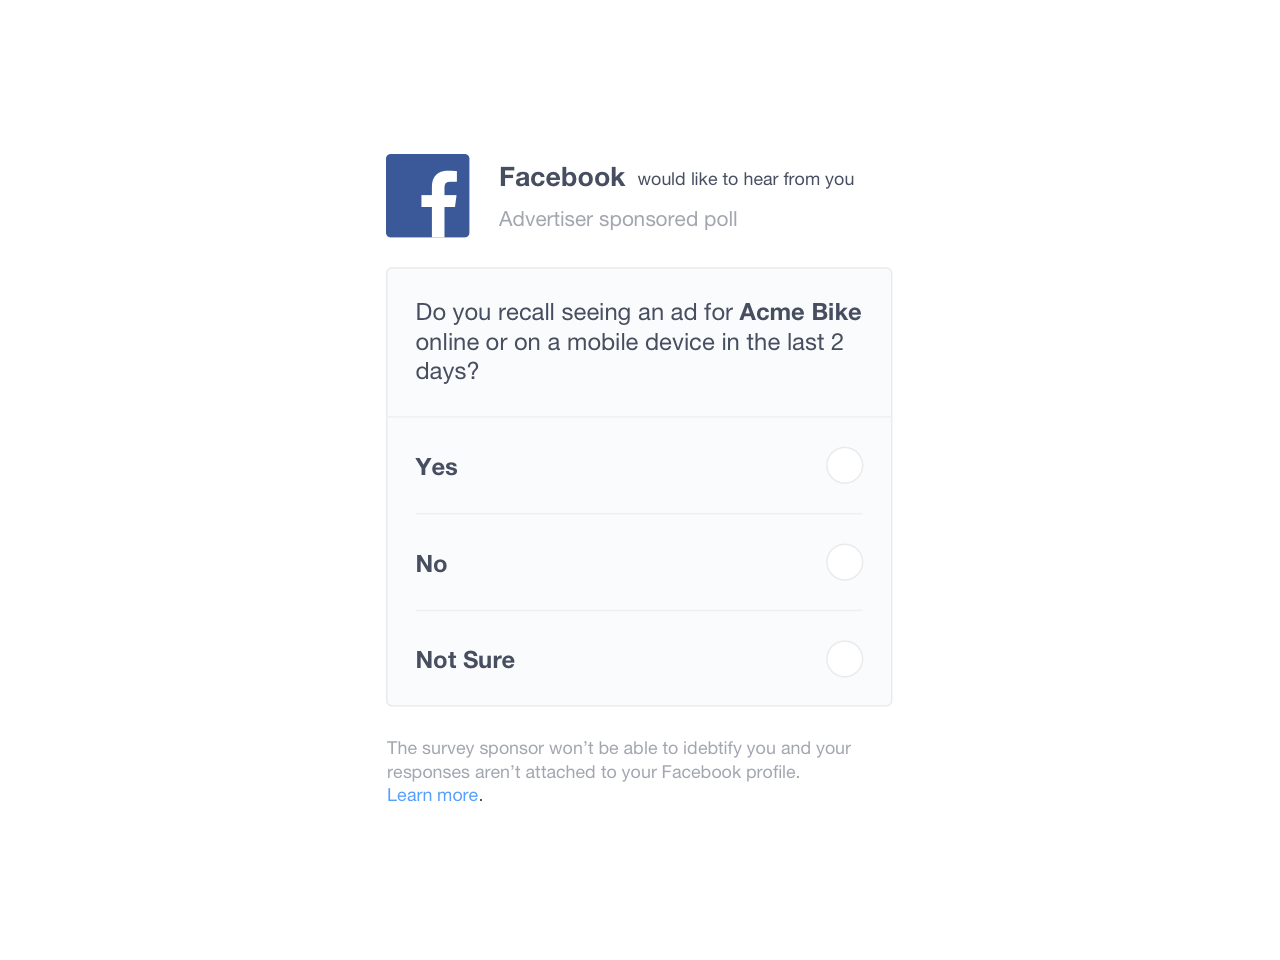 Example of a brand lift survey conducted on Facebook